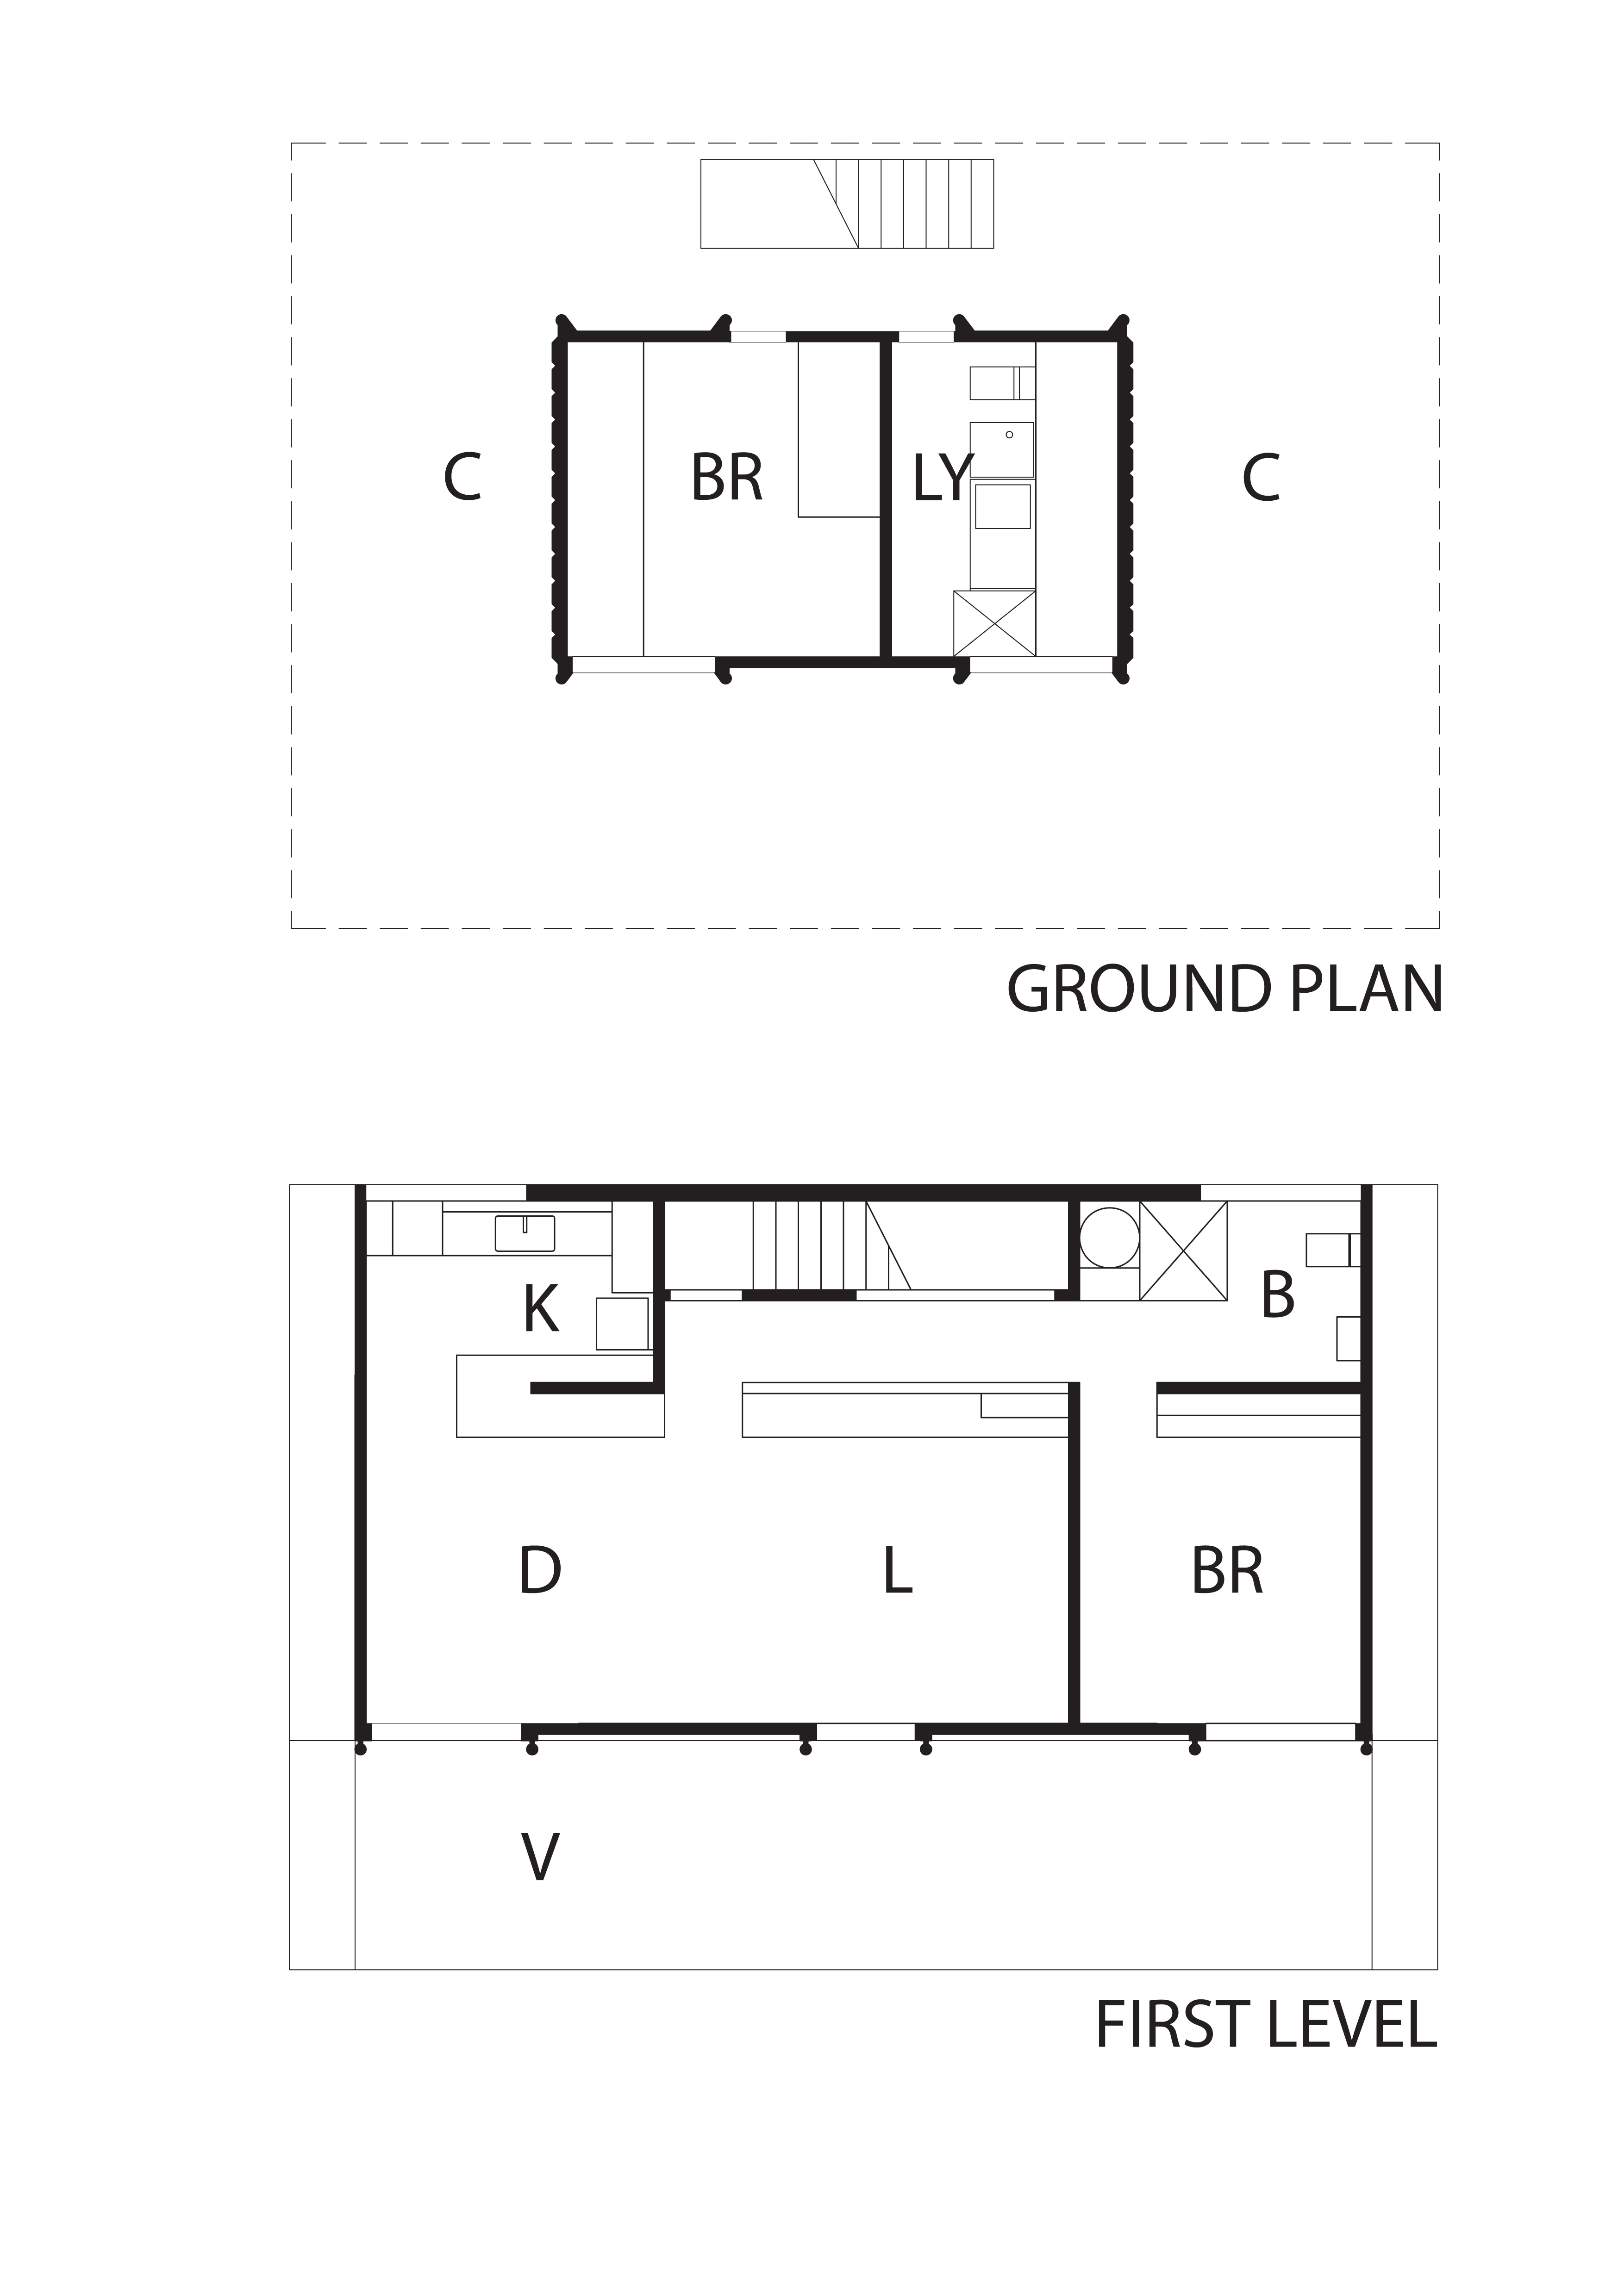 House Building Plans software Free Best Of File Mccraith House Floor Plans Wikimedia Mons